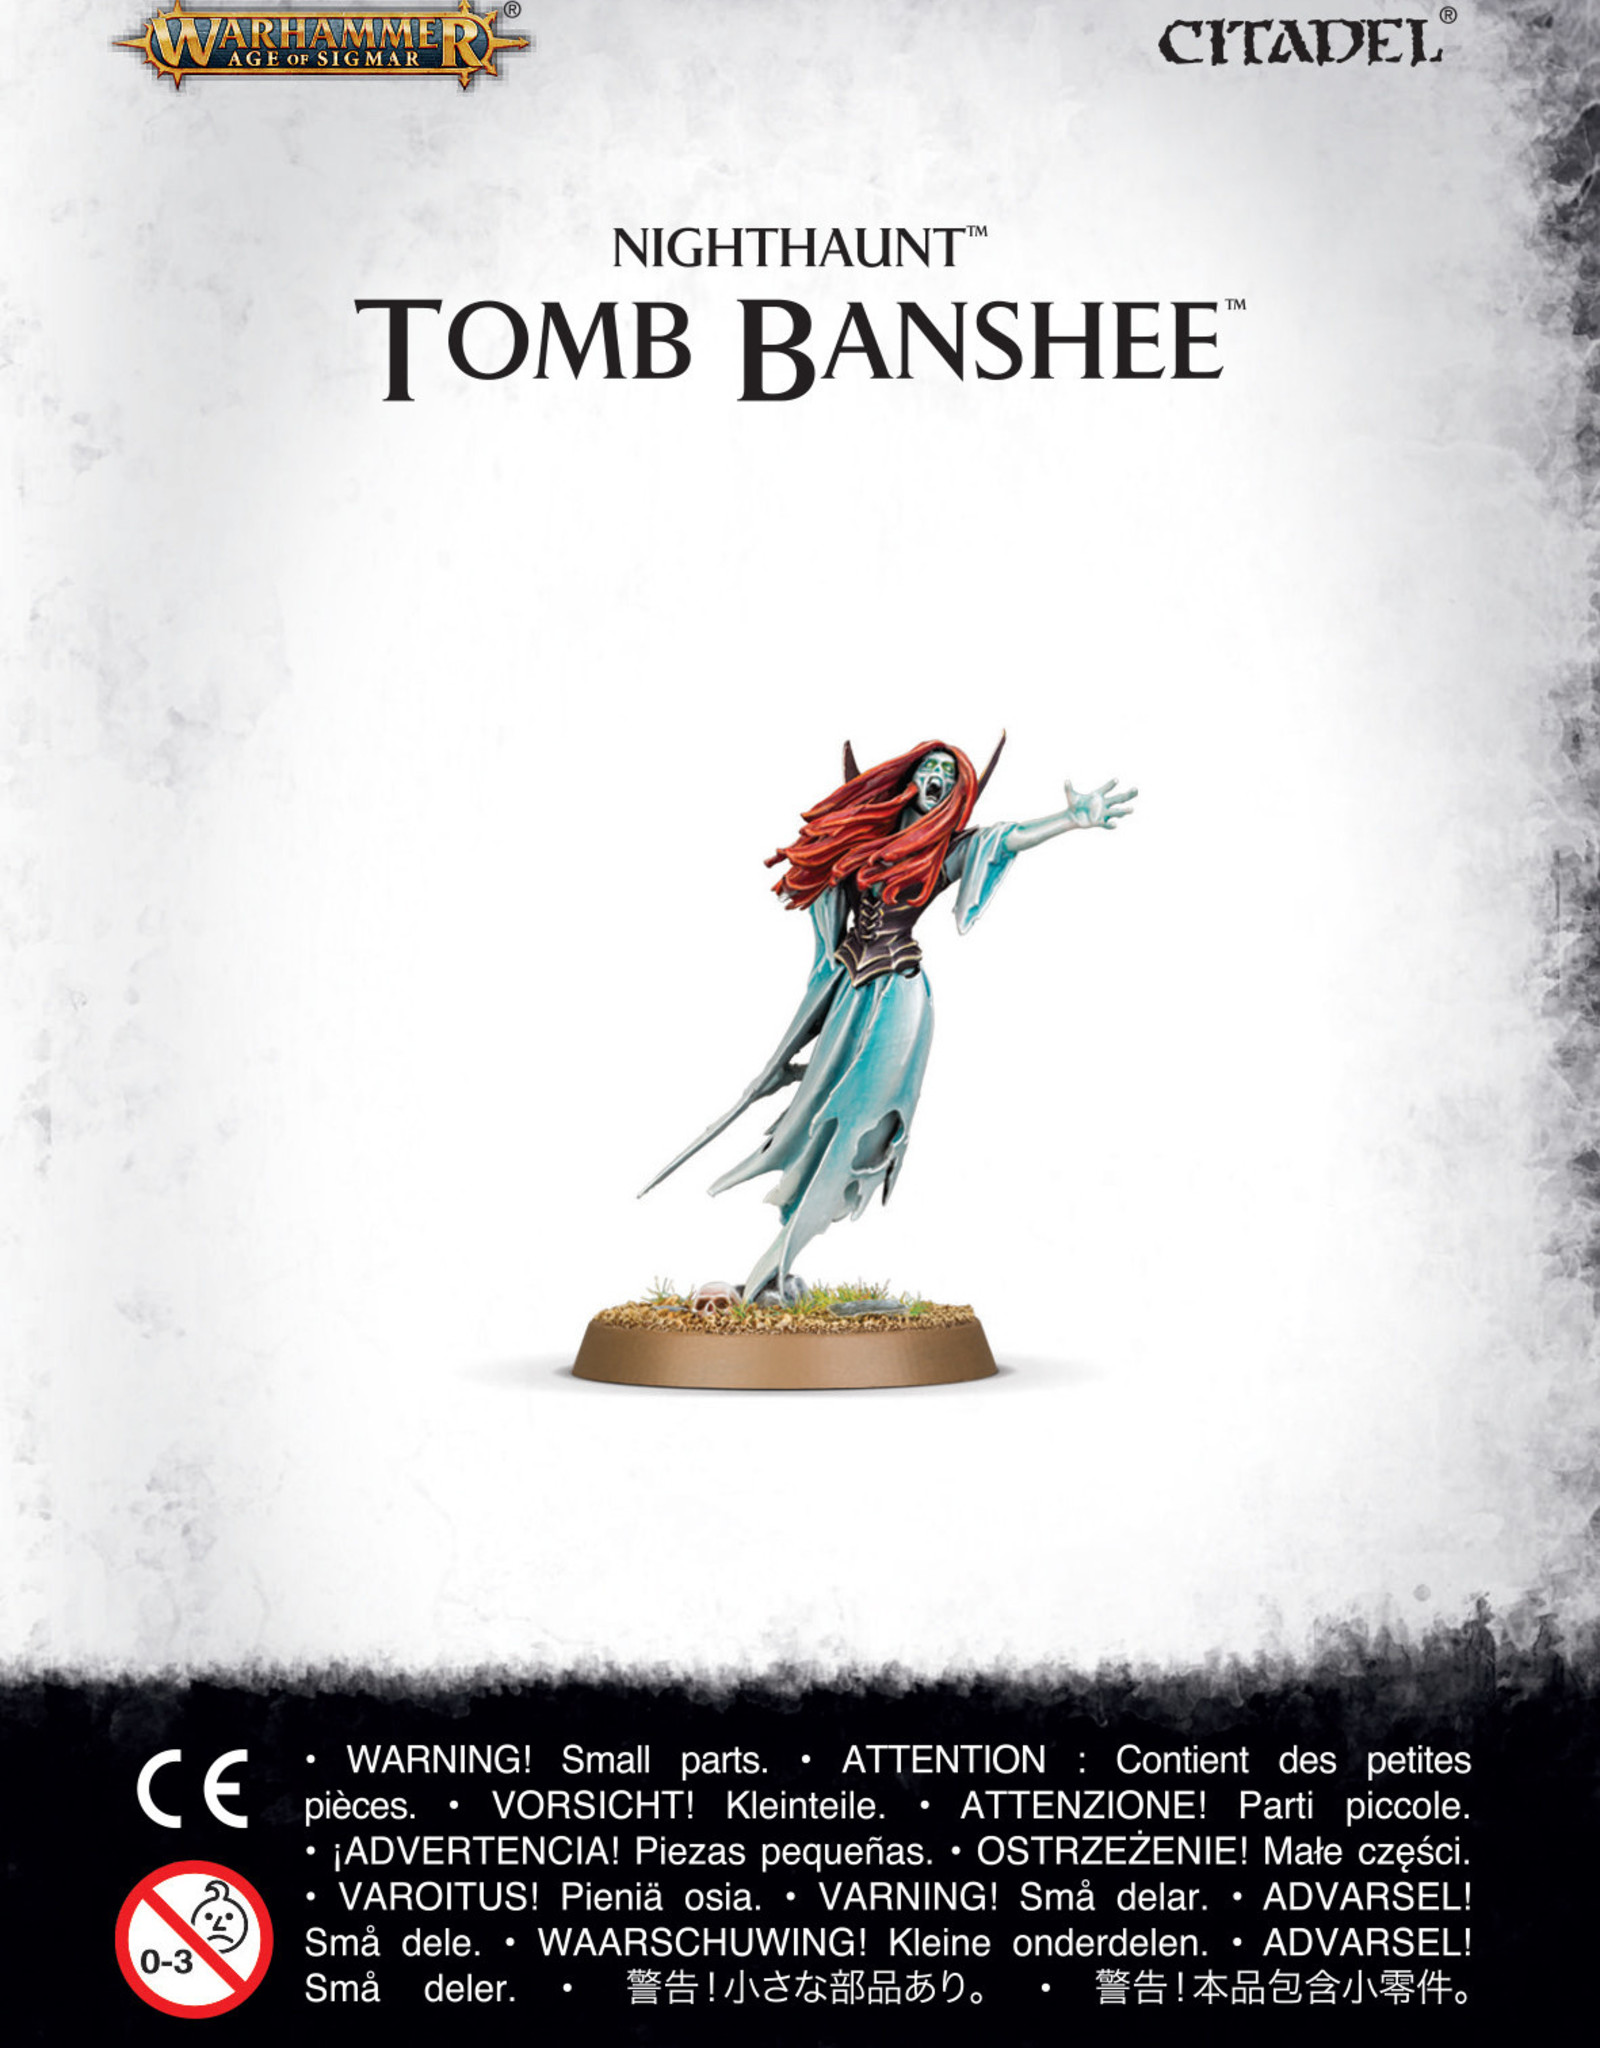 Age of Sigmar Nighthaunt: Tomb Banshee